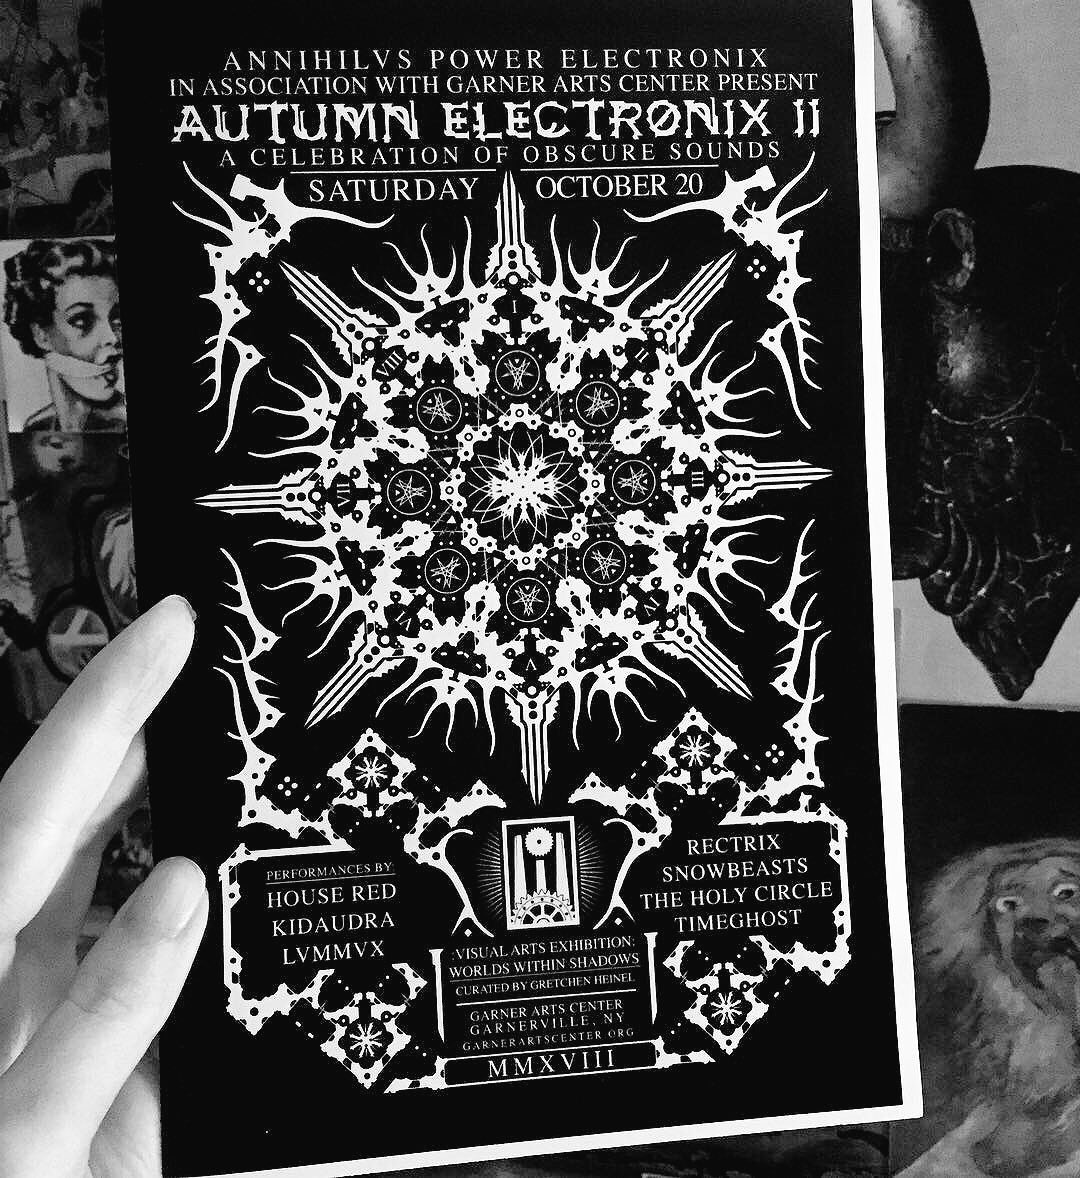 Autumn Electronix II